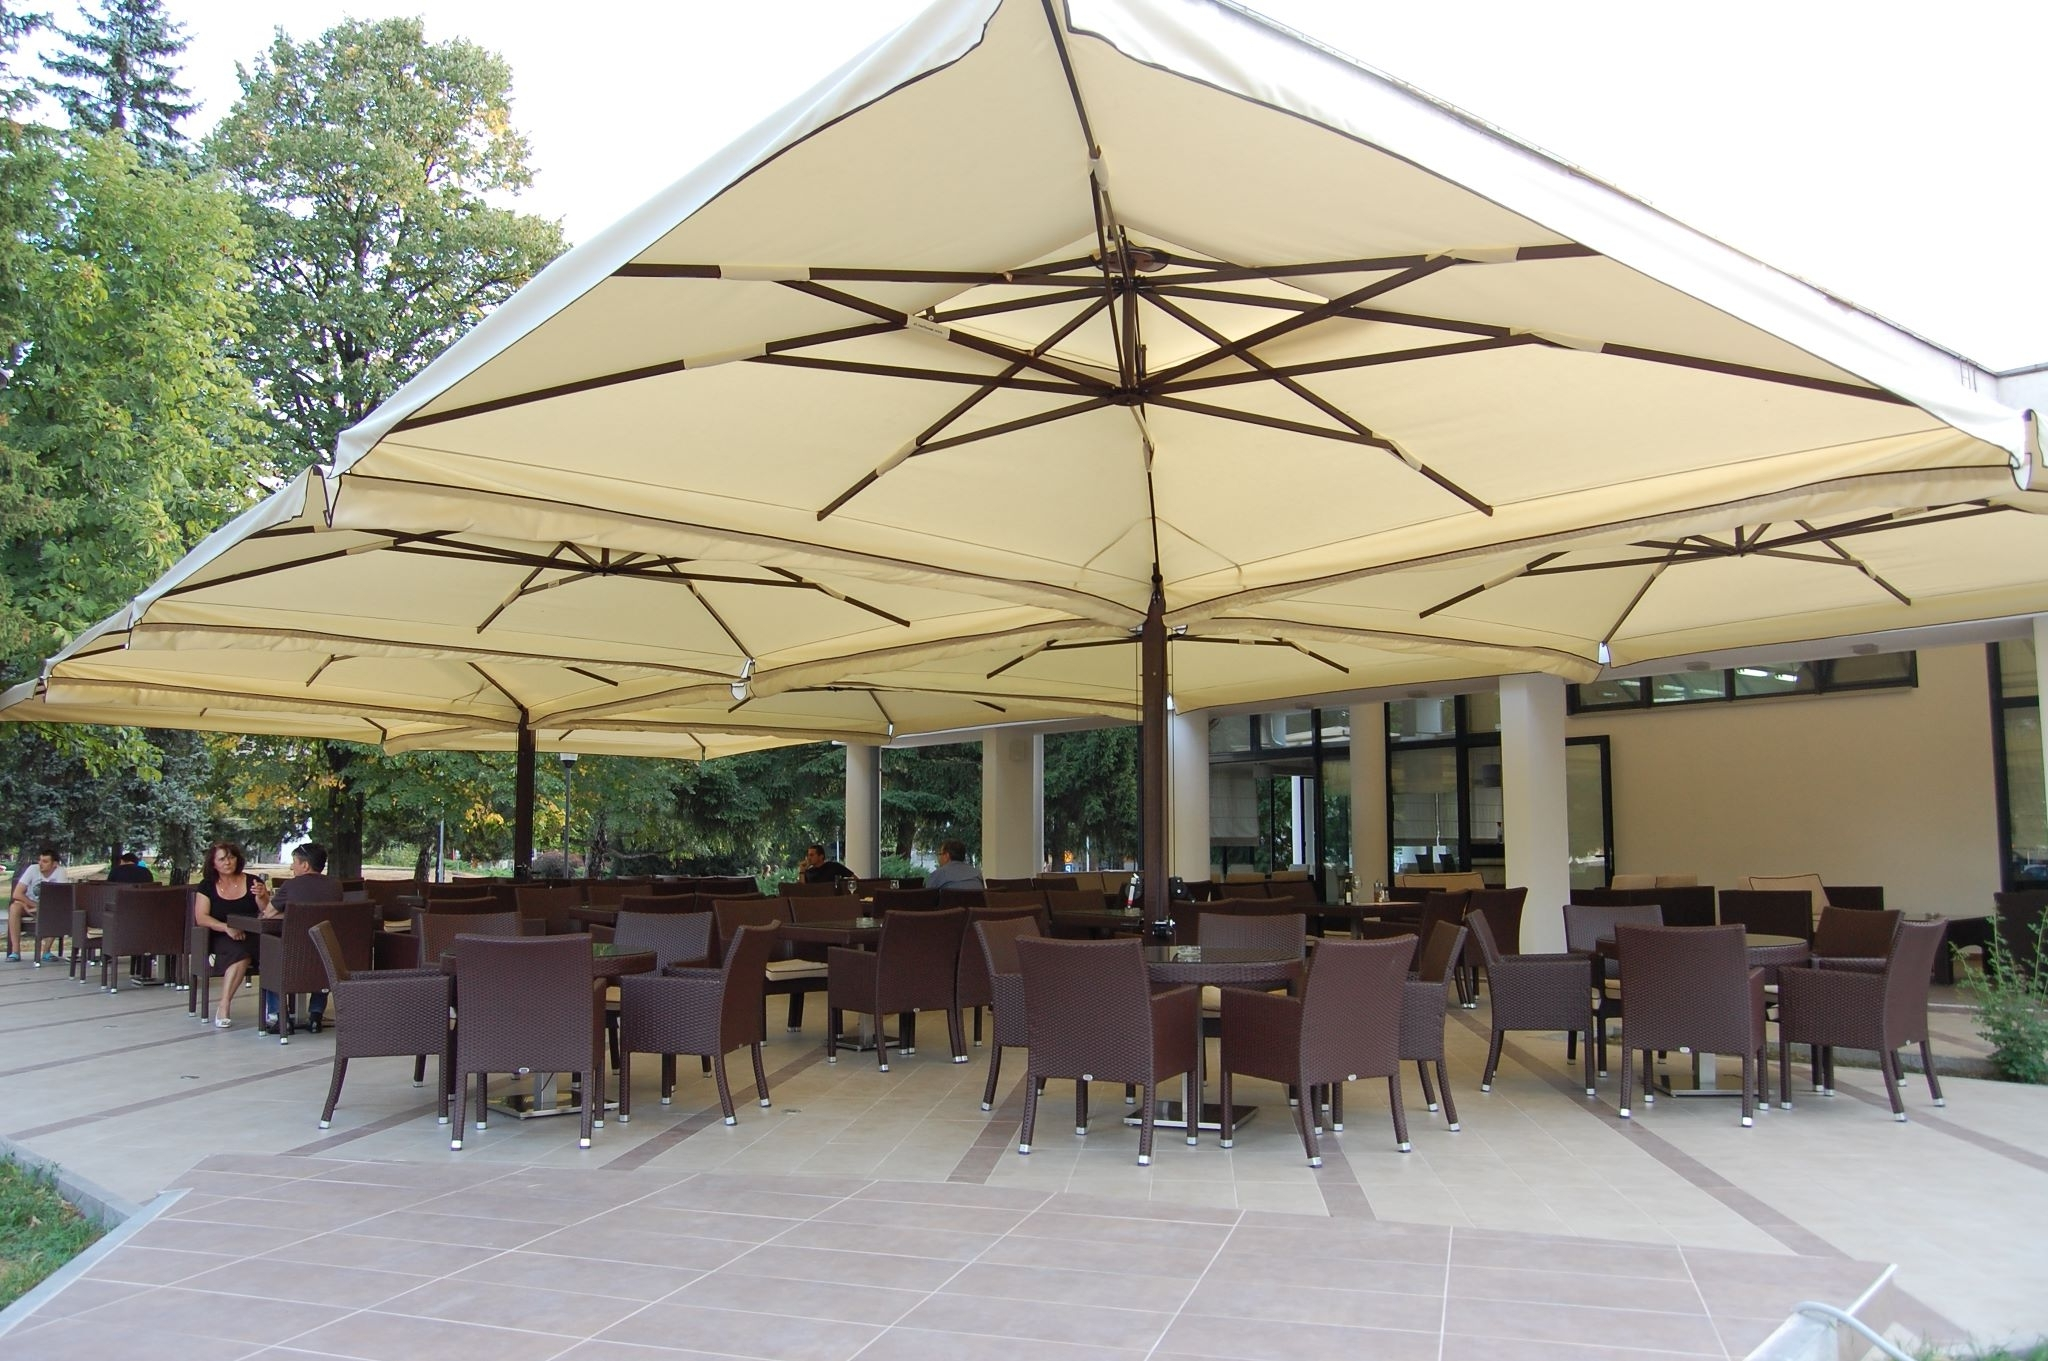 Commercial Patio Umbrellas For Restaurants, Resorts & Events With Regard To Preferred European Patio Umbrellas (View 2 of 20)